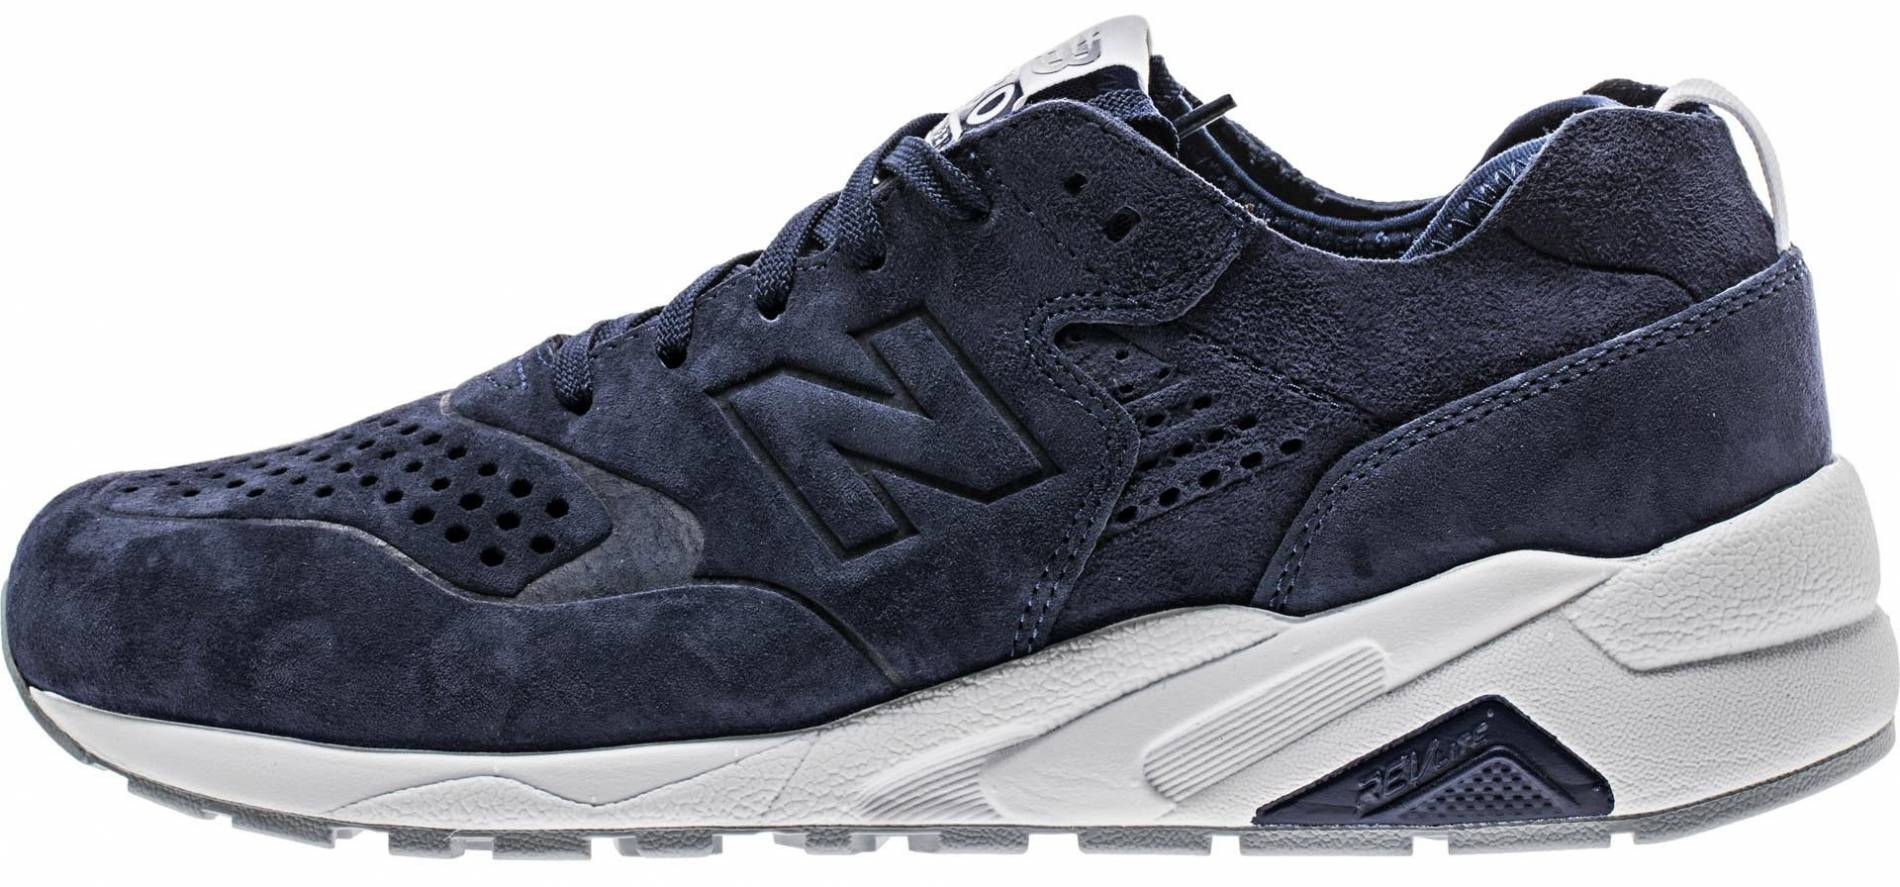 New Balance 580 Deconstructed sneakers in blue (only $130) | RunRepeat